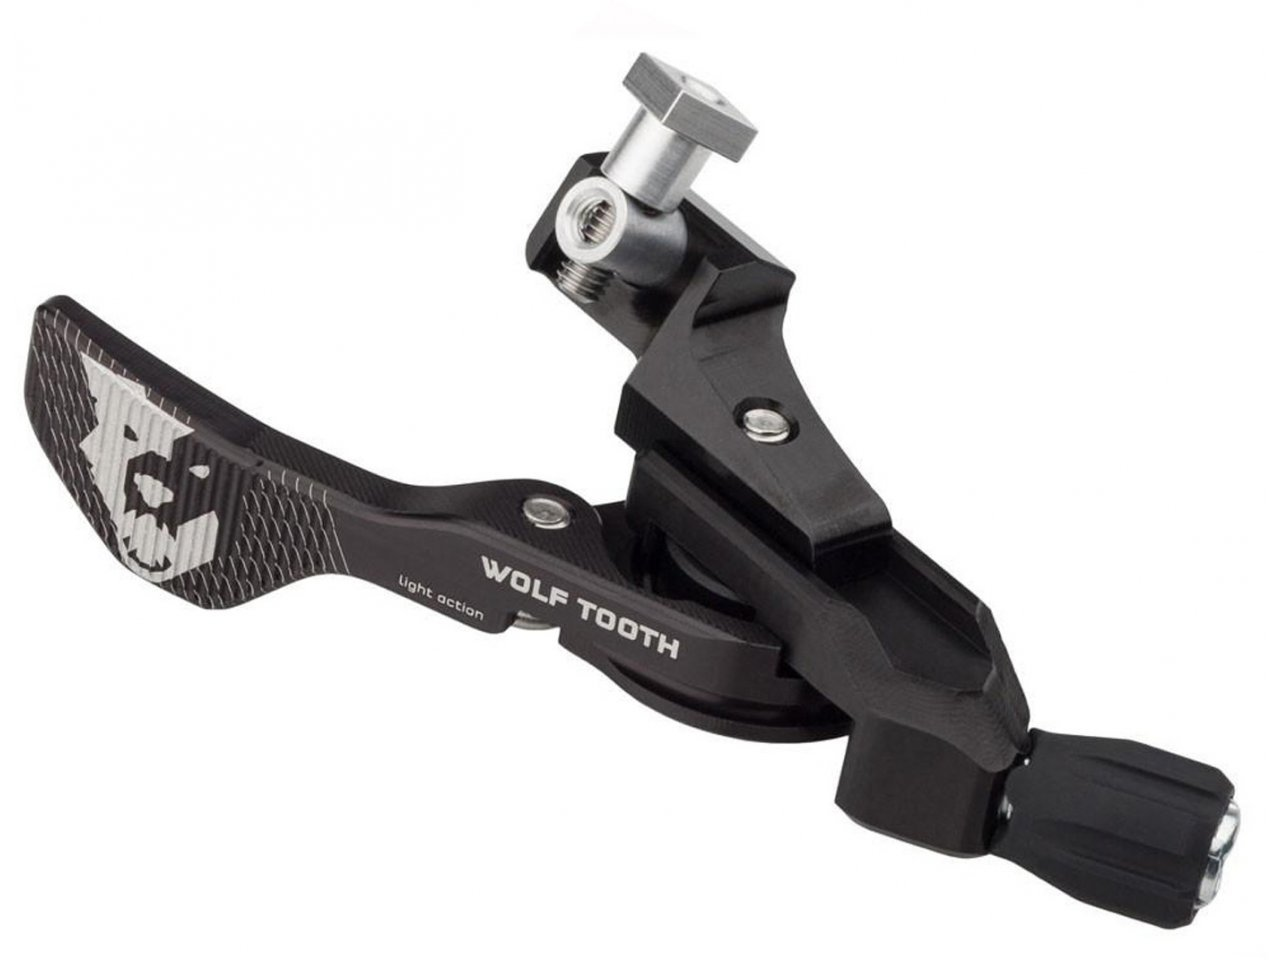 Wolf Tooth Components ReMote Light Action for SRAM MatchMaker Dropper